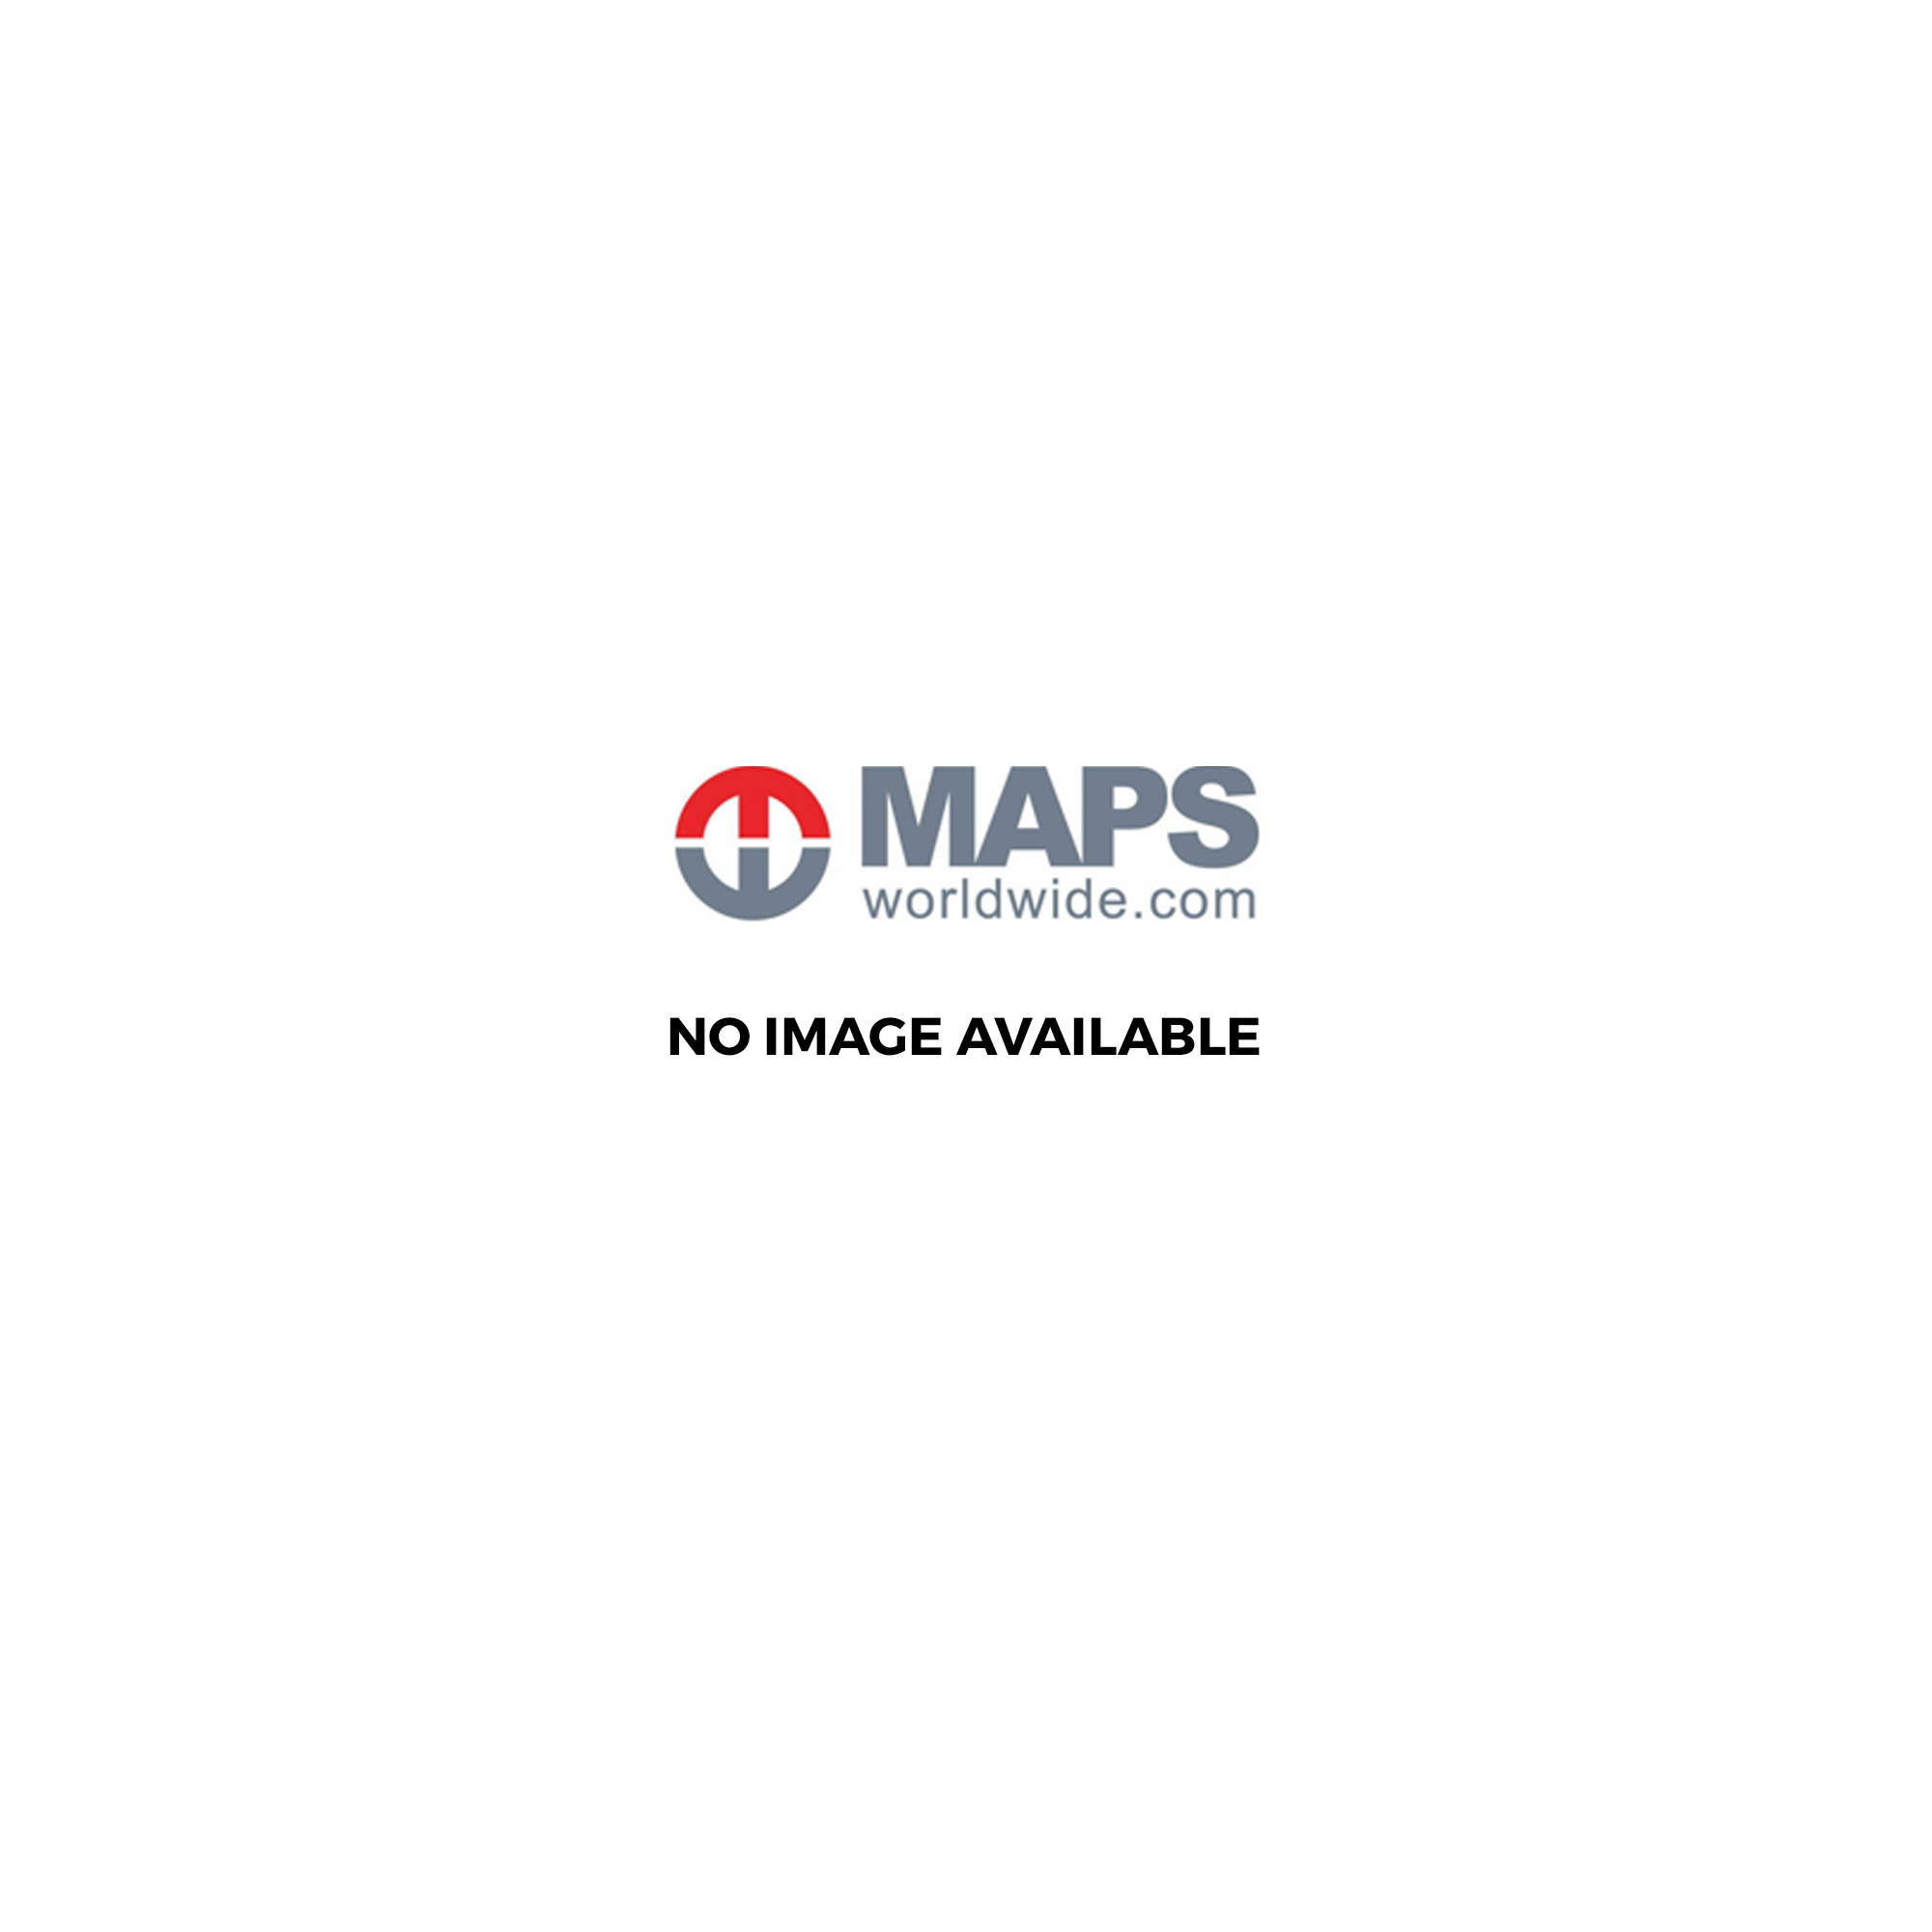 Map Of Germany Mountains.Outdoor Map Of Germany 18 Elbe Sandstone Mountains Hallwag